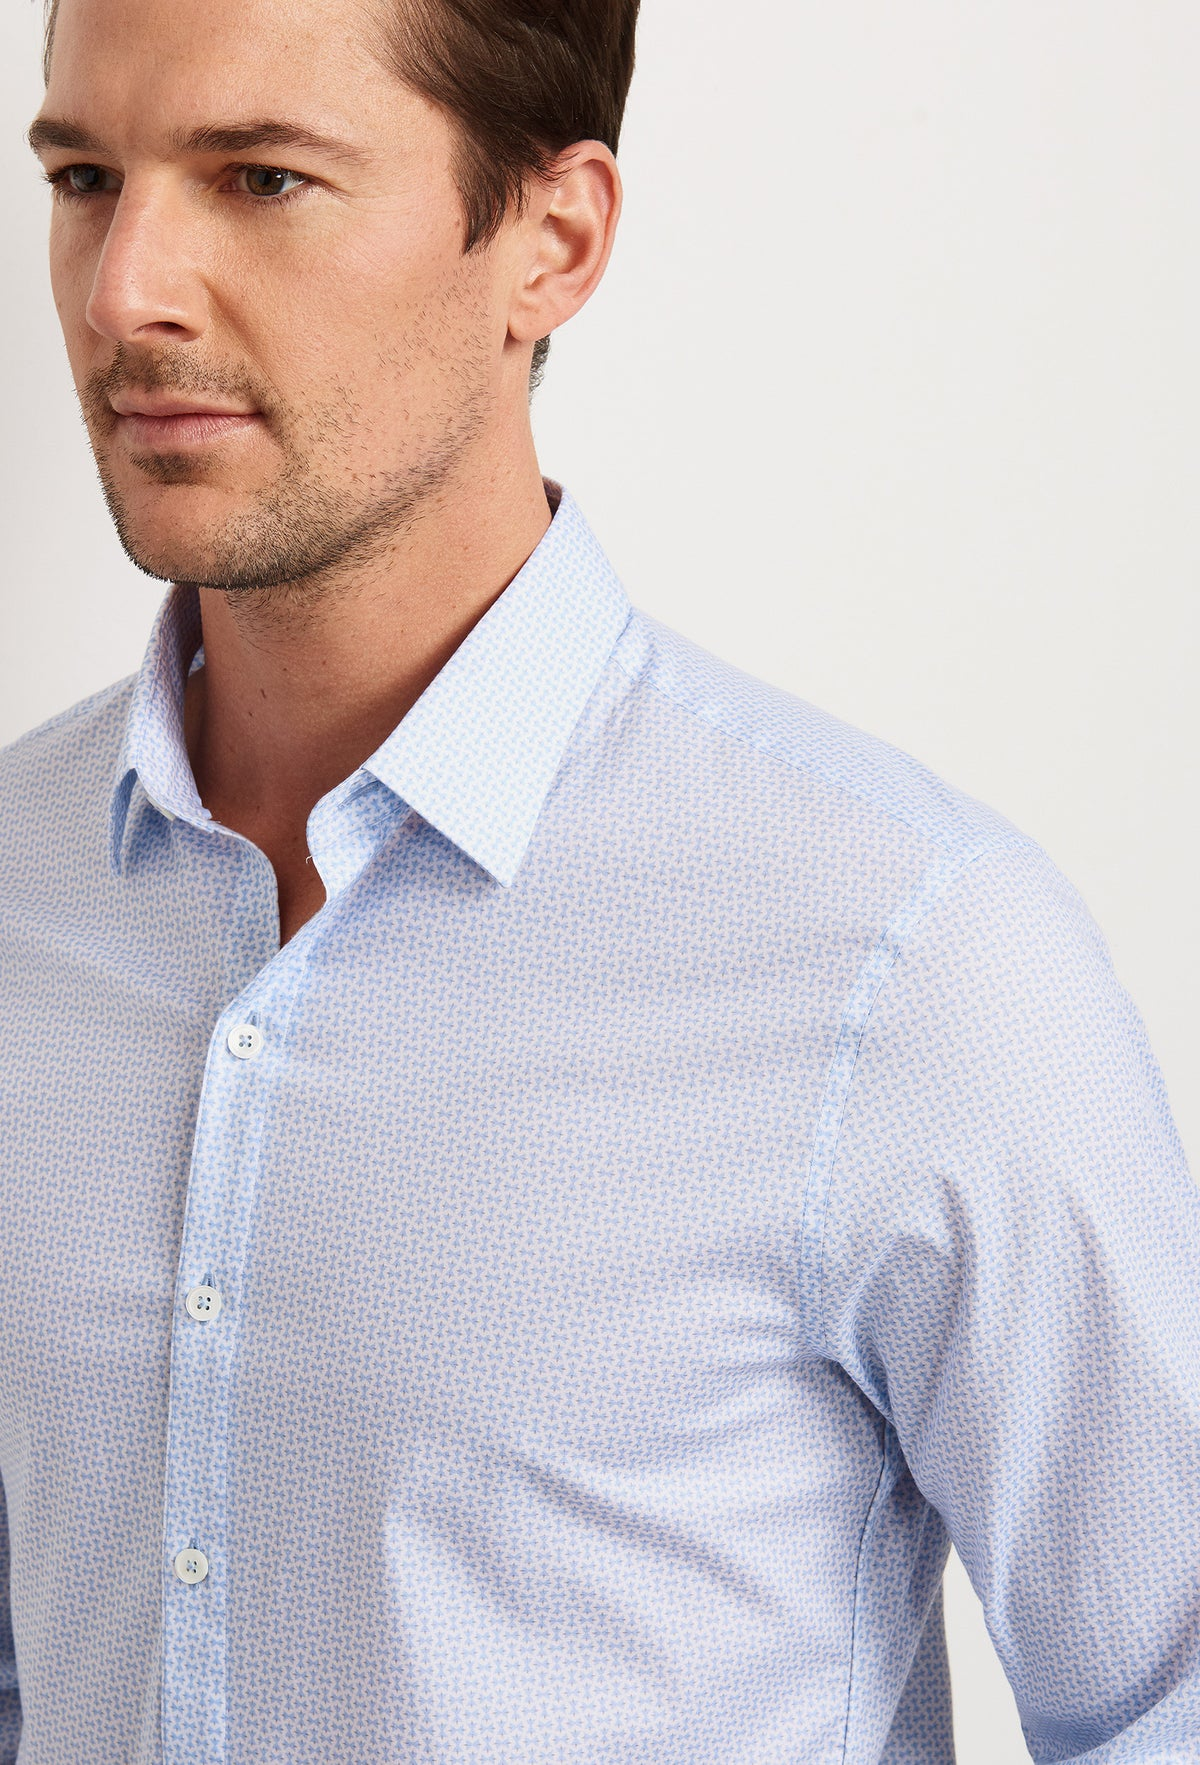 ZACHARY-PRELL-Belanger-ShirtsModern-Menswear-New-Dress-Code